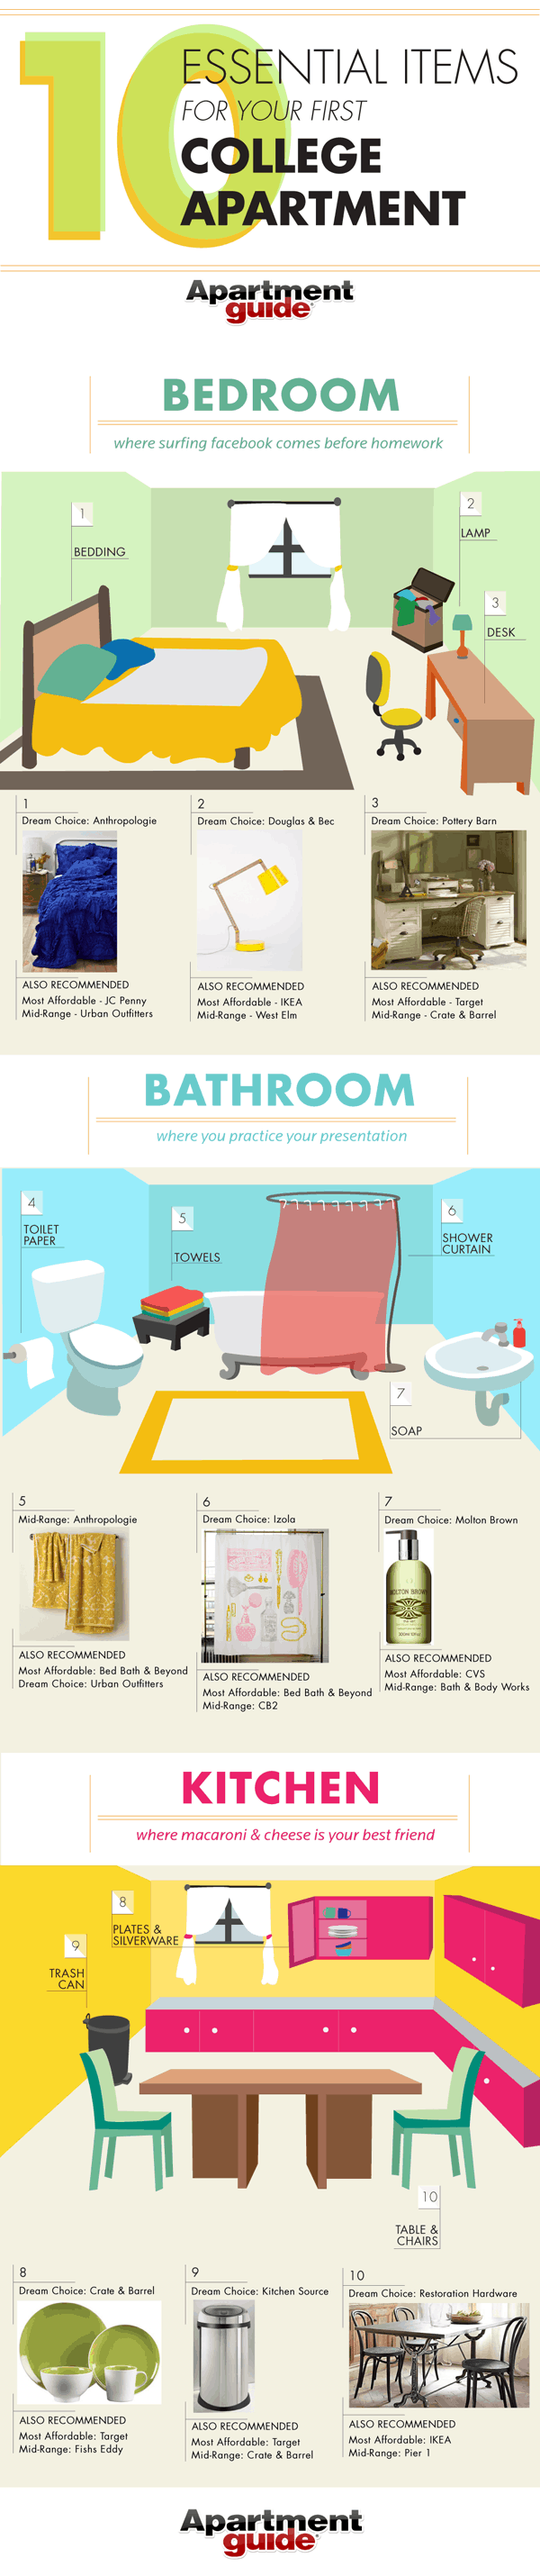 College Apartment Essentials Checklist   Infogrpahic